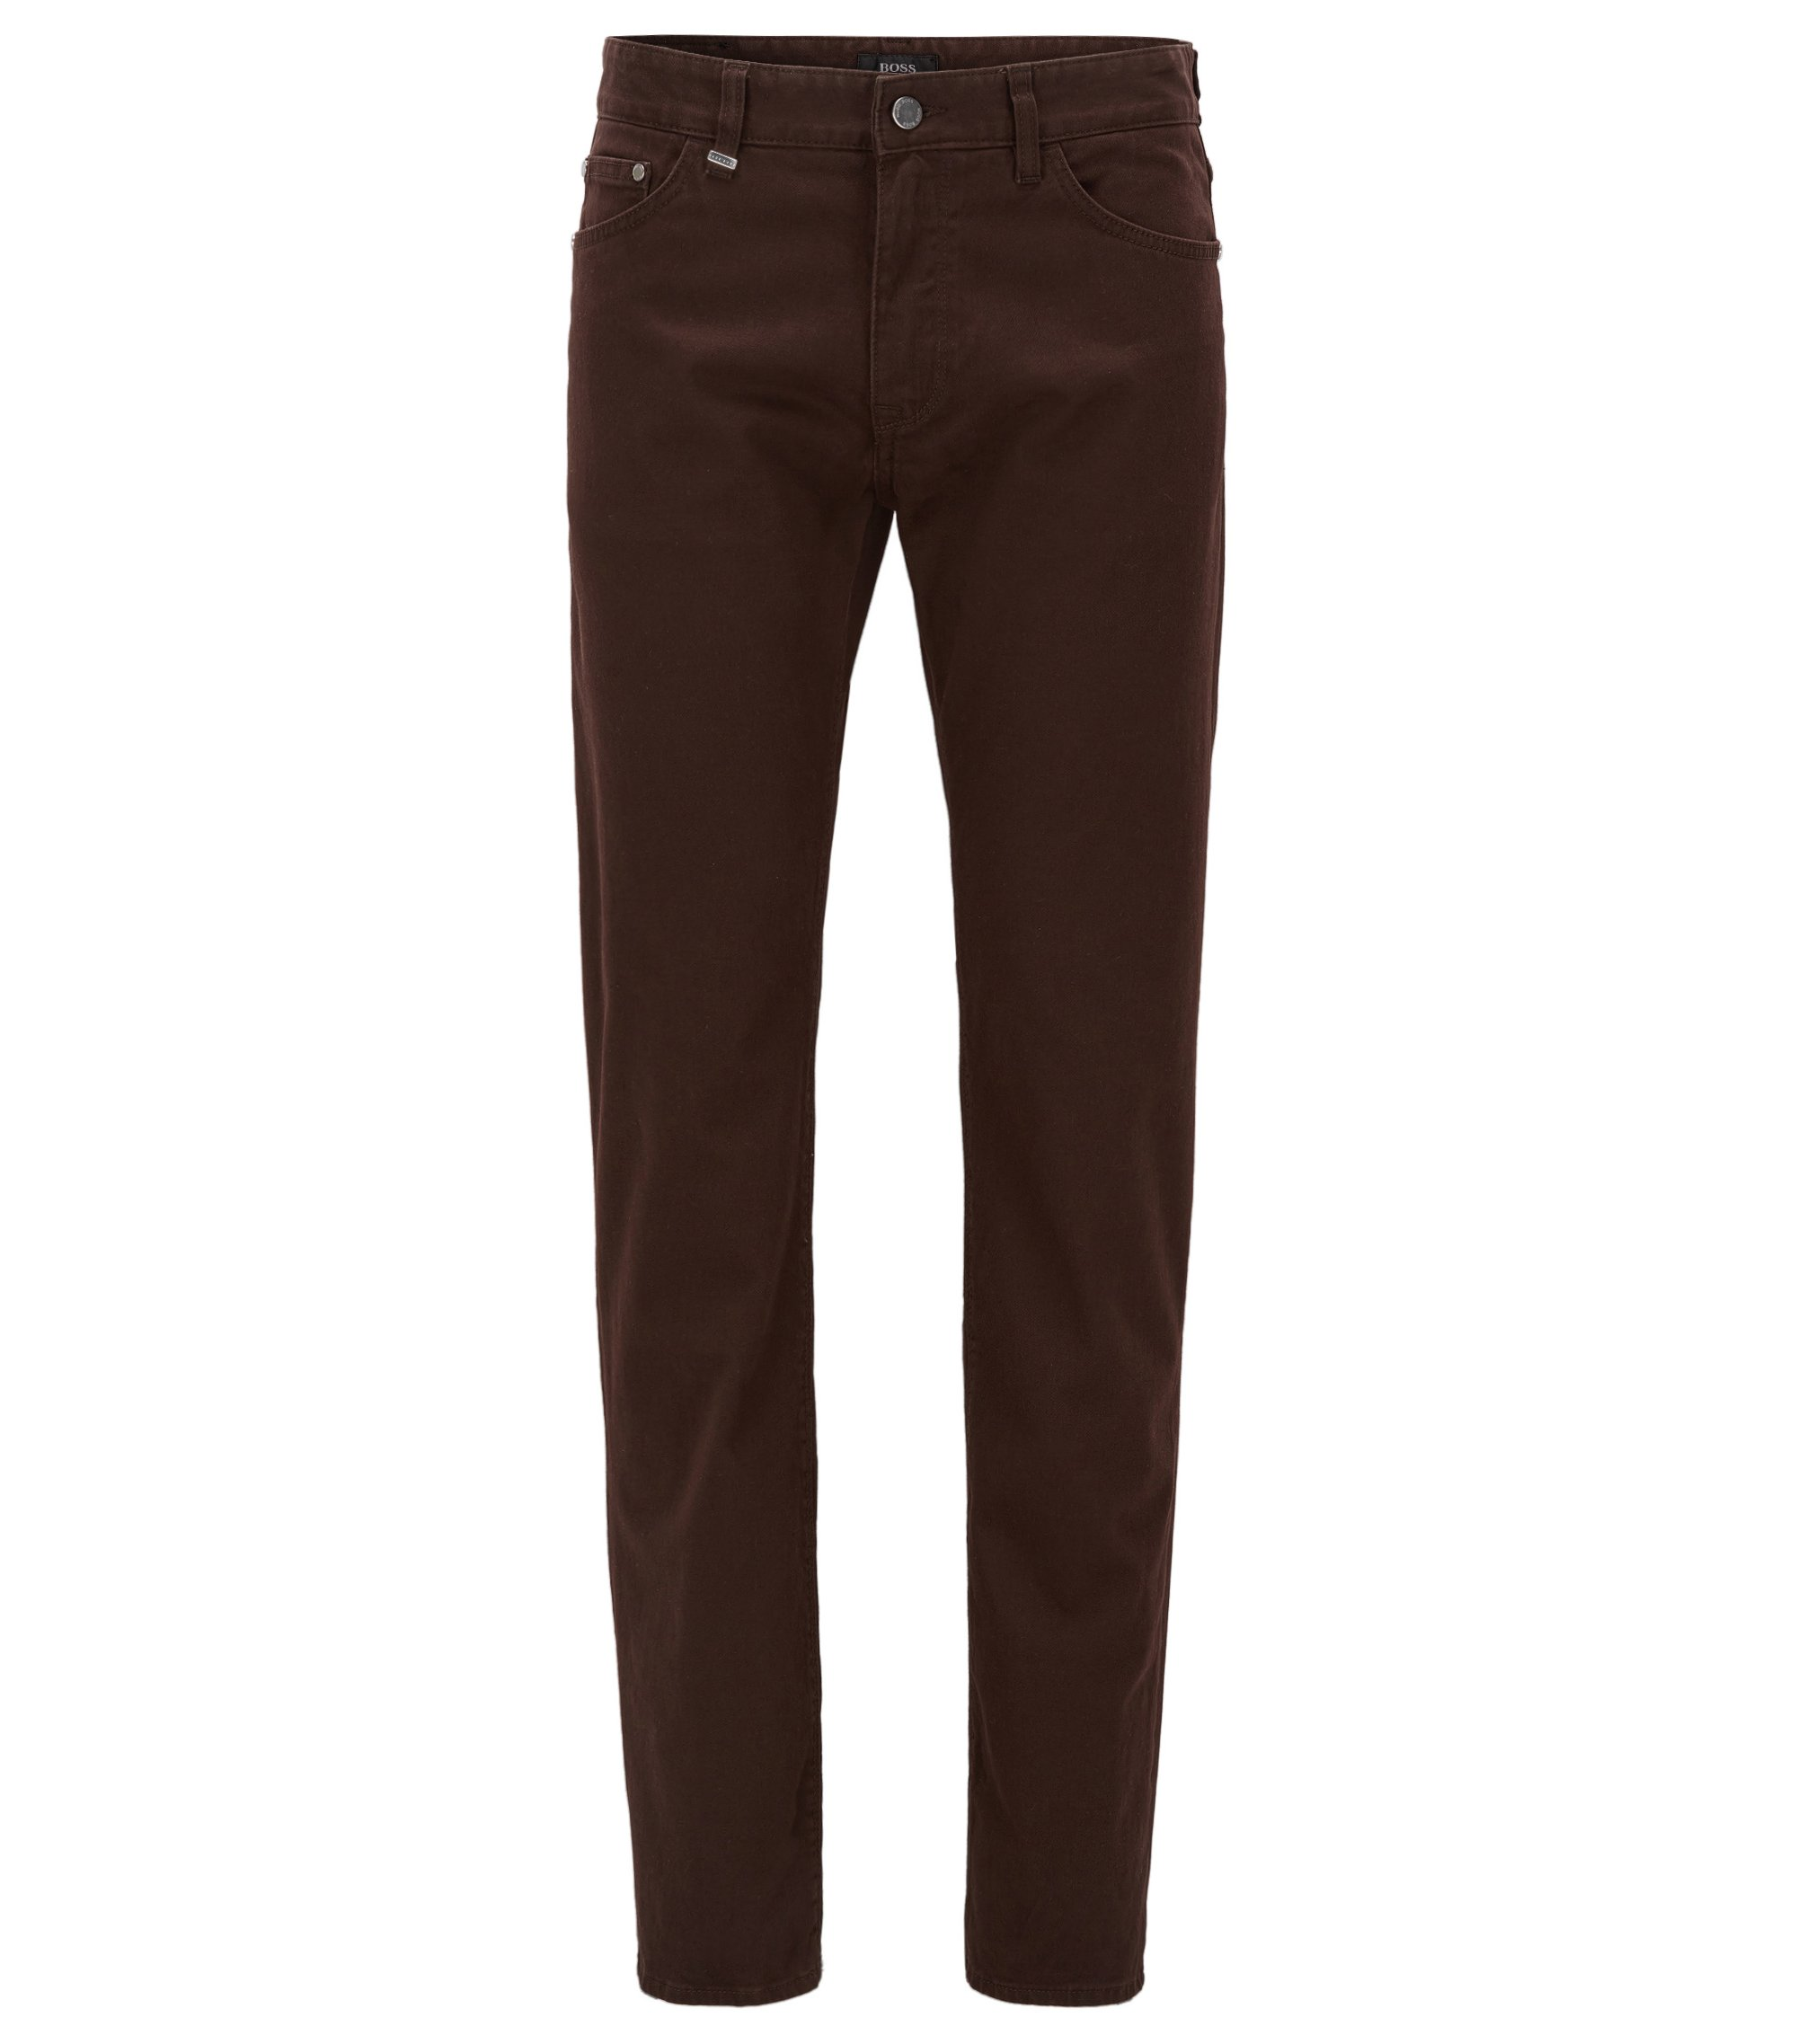 Italian Stretch Cotton Jean, Regular Fit | Maine, Dark Brown